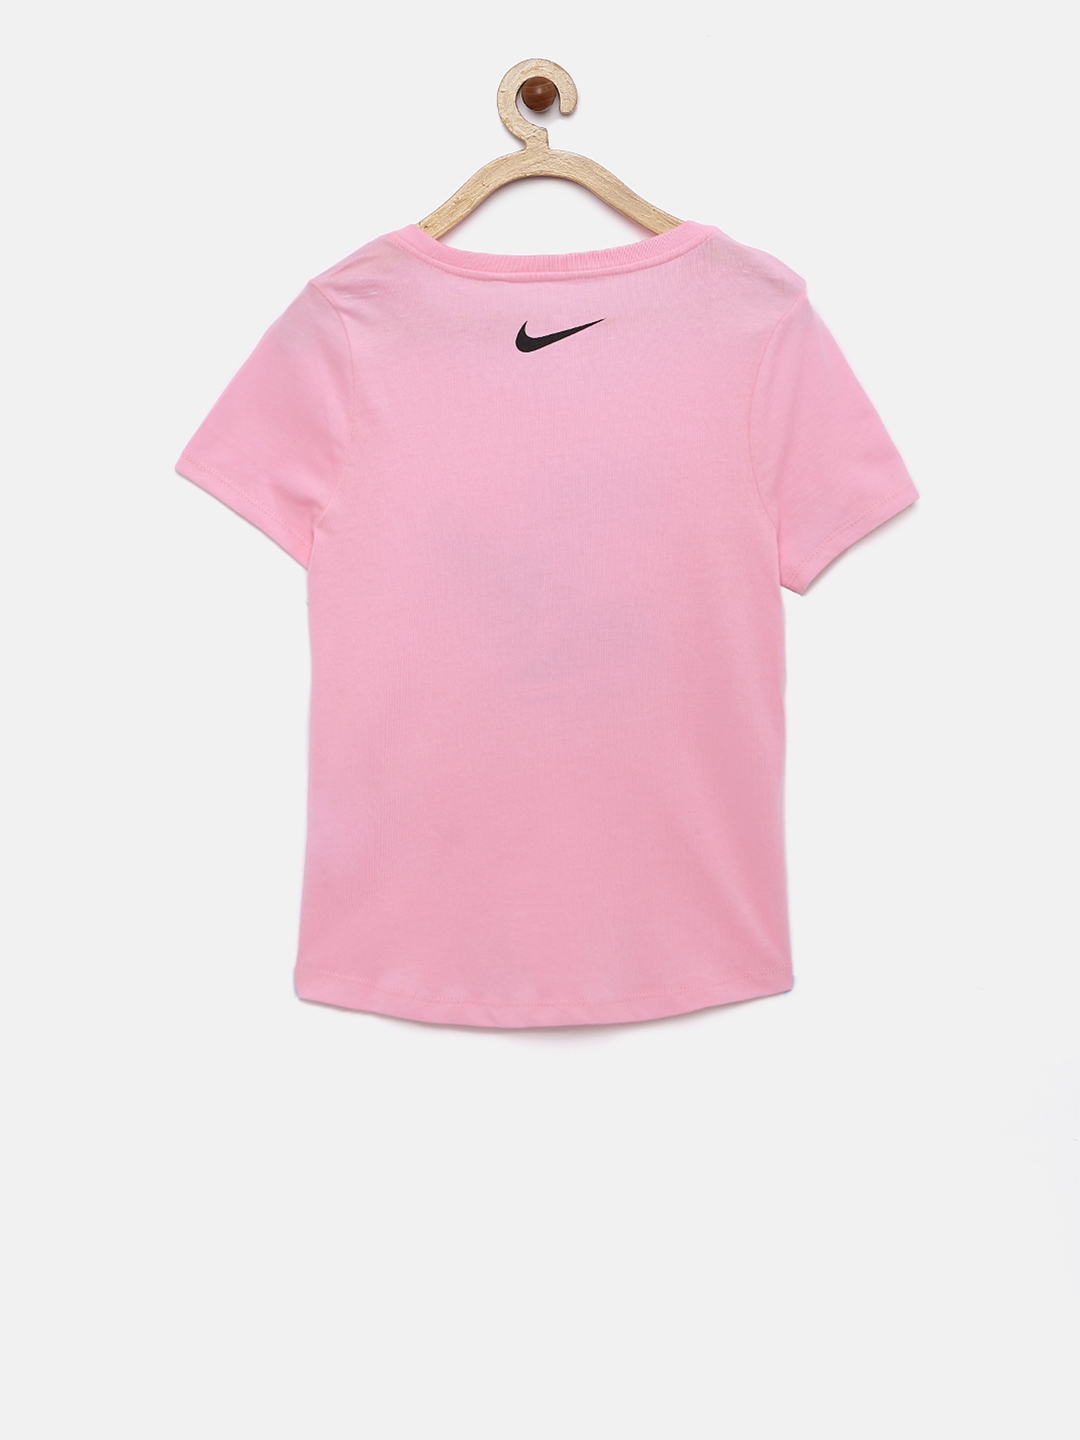 68a69121 Buy Nike Girls Pink ARE WE THERE T Shirt - Tops for Girls 6814023 ...